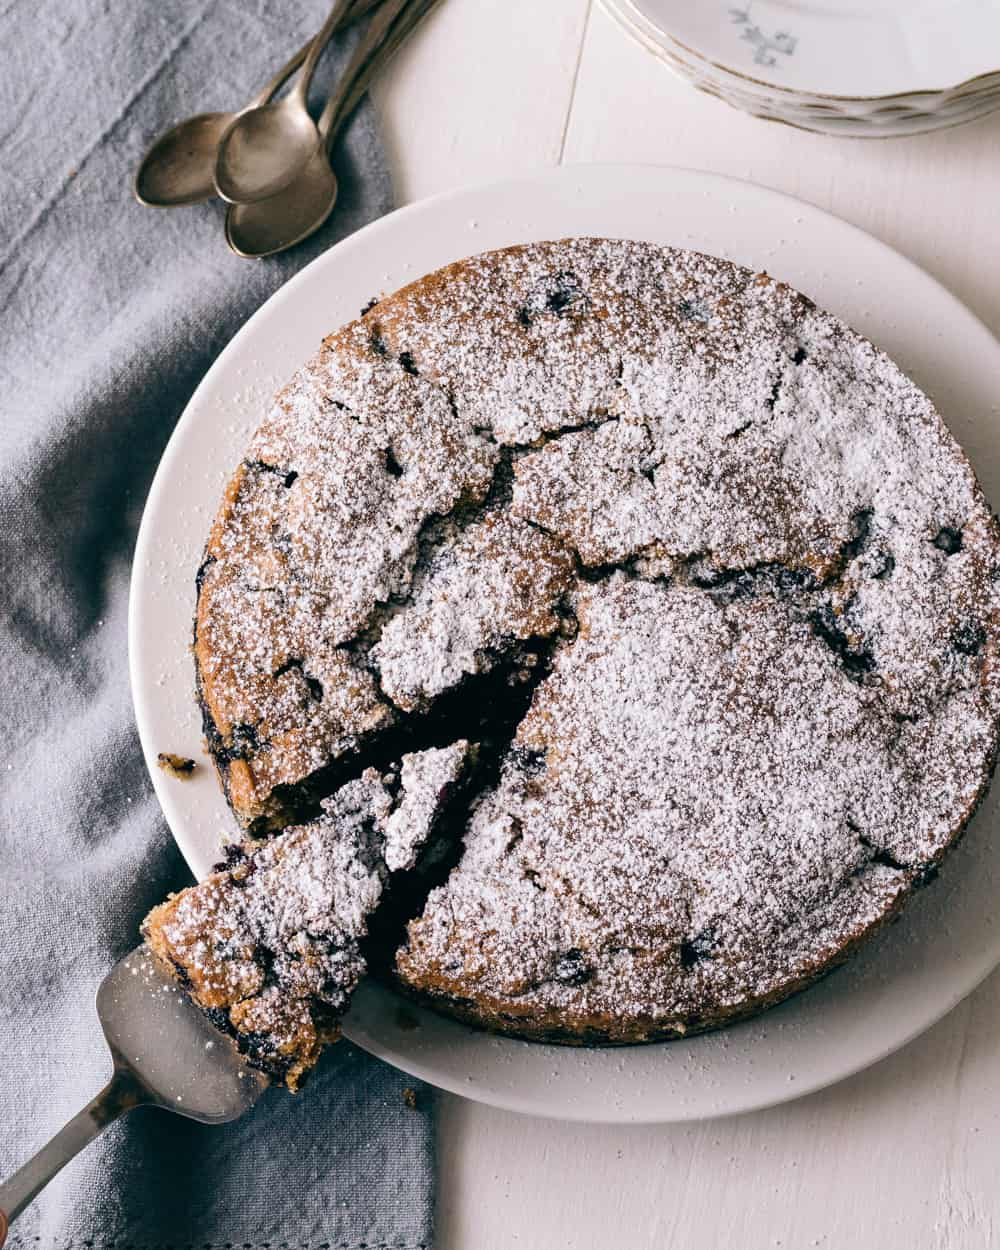 Cake made with blueberries with a dusting of powdered sugar.